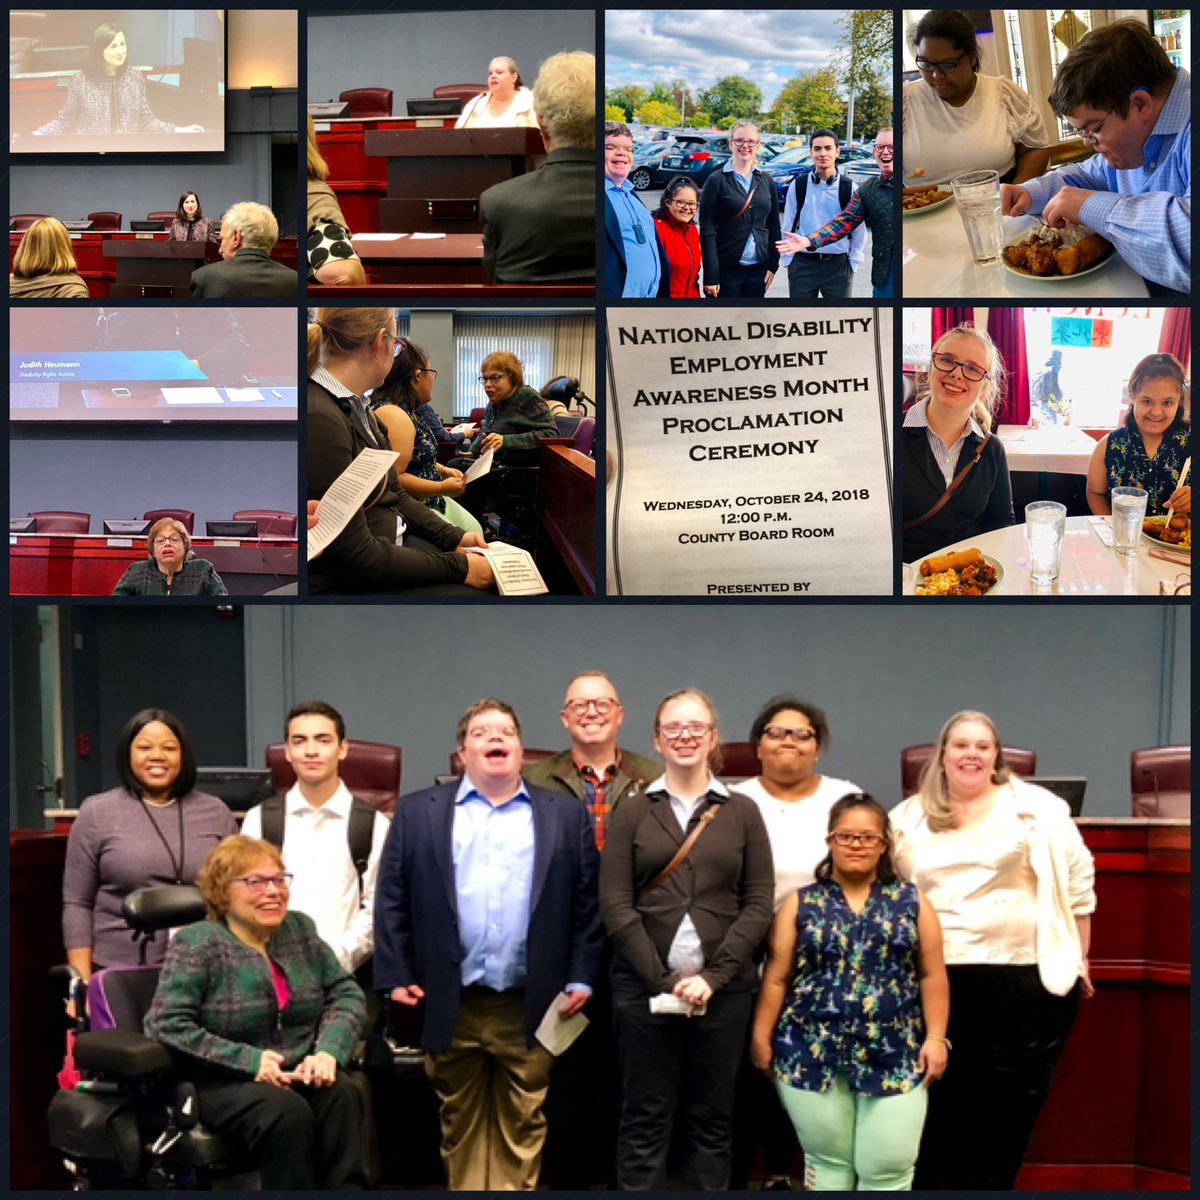 A formal lunch out in the community &amp; a fantastic Proclamation Ceremony presented by LEAD with the one and only <a target='_blank' href='http://twitter.com/kcristol'>@kcristol</a> &amp; <a target='_blank' href='http://twitter.com/judithheumann'>@judithheumann</a> ! <a target='_blank' href='http://twitter.com/Margaretchungcc'>@Margaretchungcc</a> <a target='_blank' href='http://twitter.com/APSCareerCenter'>@APSCareerCenter</a> <a target='_blank' href='http://twitter.com/APSVirginia'>@APSVirginia</a> <a target='_blank' href='http://twitter.com/ArlingtonSEPTA'>@ArlingtonSEPTA</a> <a target='_blank' href='http://twitter.com/MsBakerACC'>@MsBakerACC</a> <a target='_blank' href='http://twitter.com/APHealeyACC'>@APHealeyACC</a> <a target='_blank' href='http://twitter.com/ArlingtonVA'>@ArlingtonVA</a> <a target='_blank' href='https://t.co/kkZTdJVS0N'>https://t.co/kkZTdJVS0N</a>